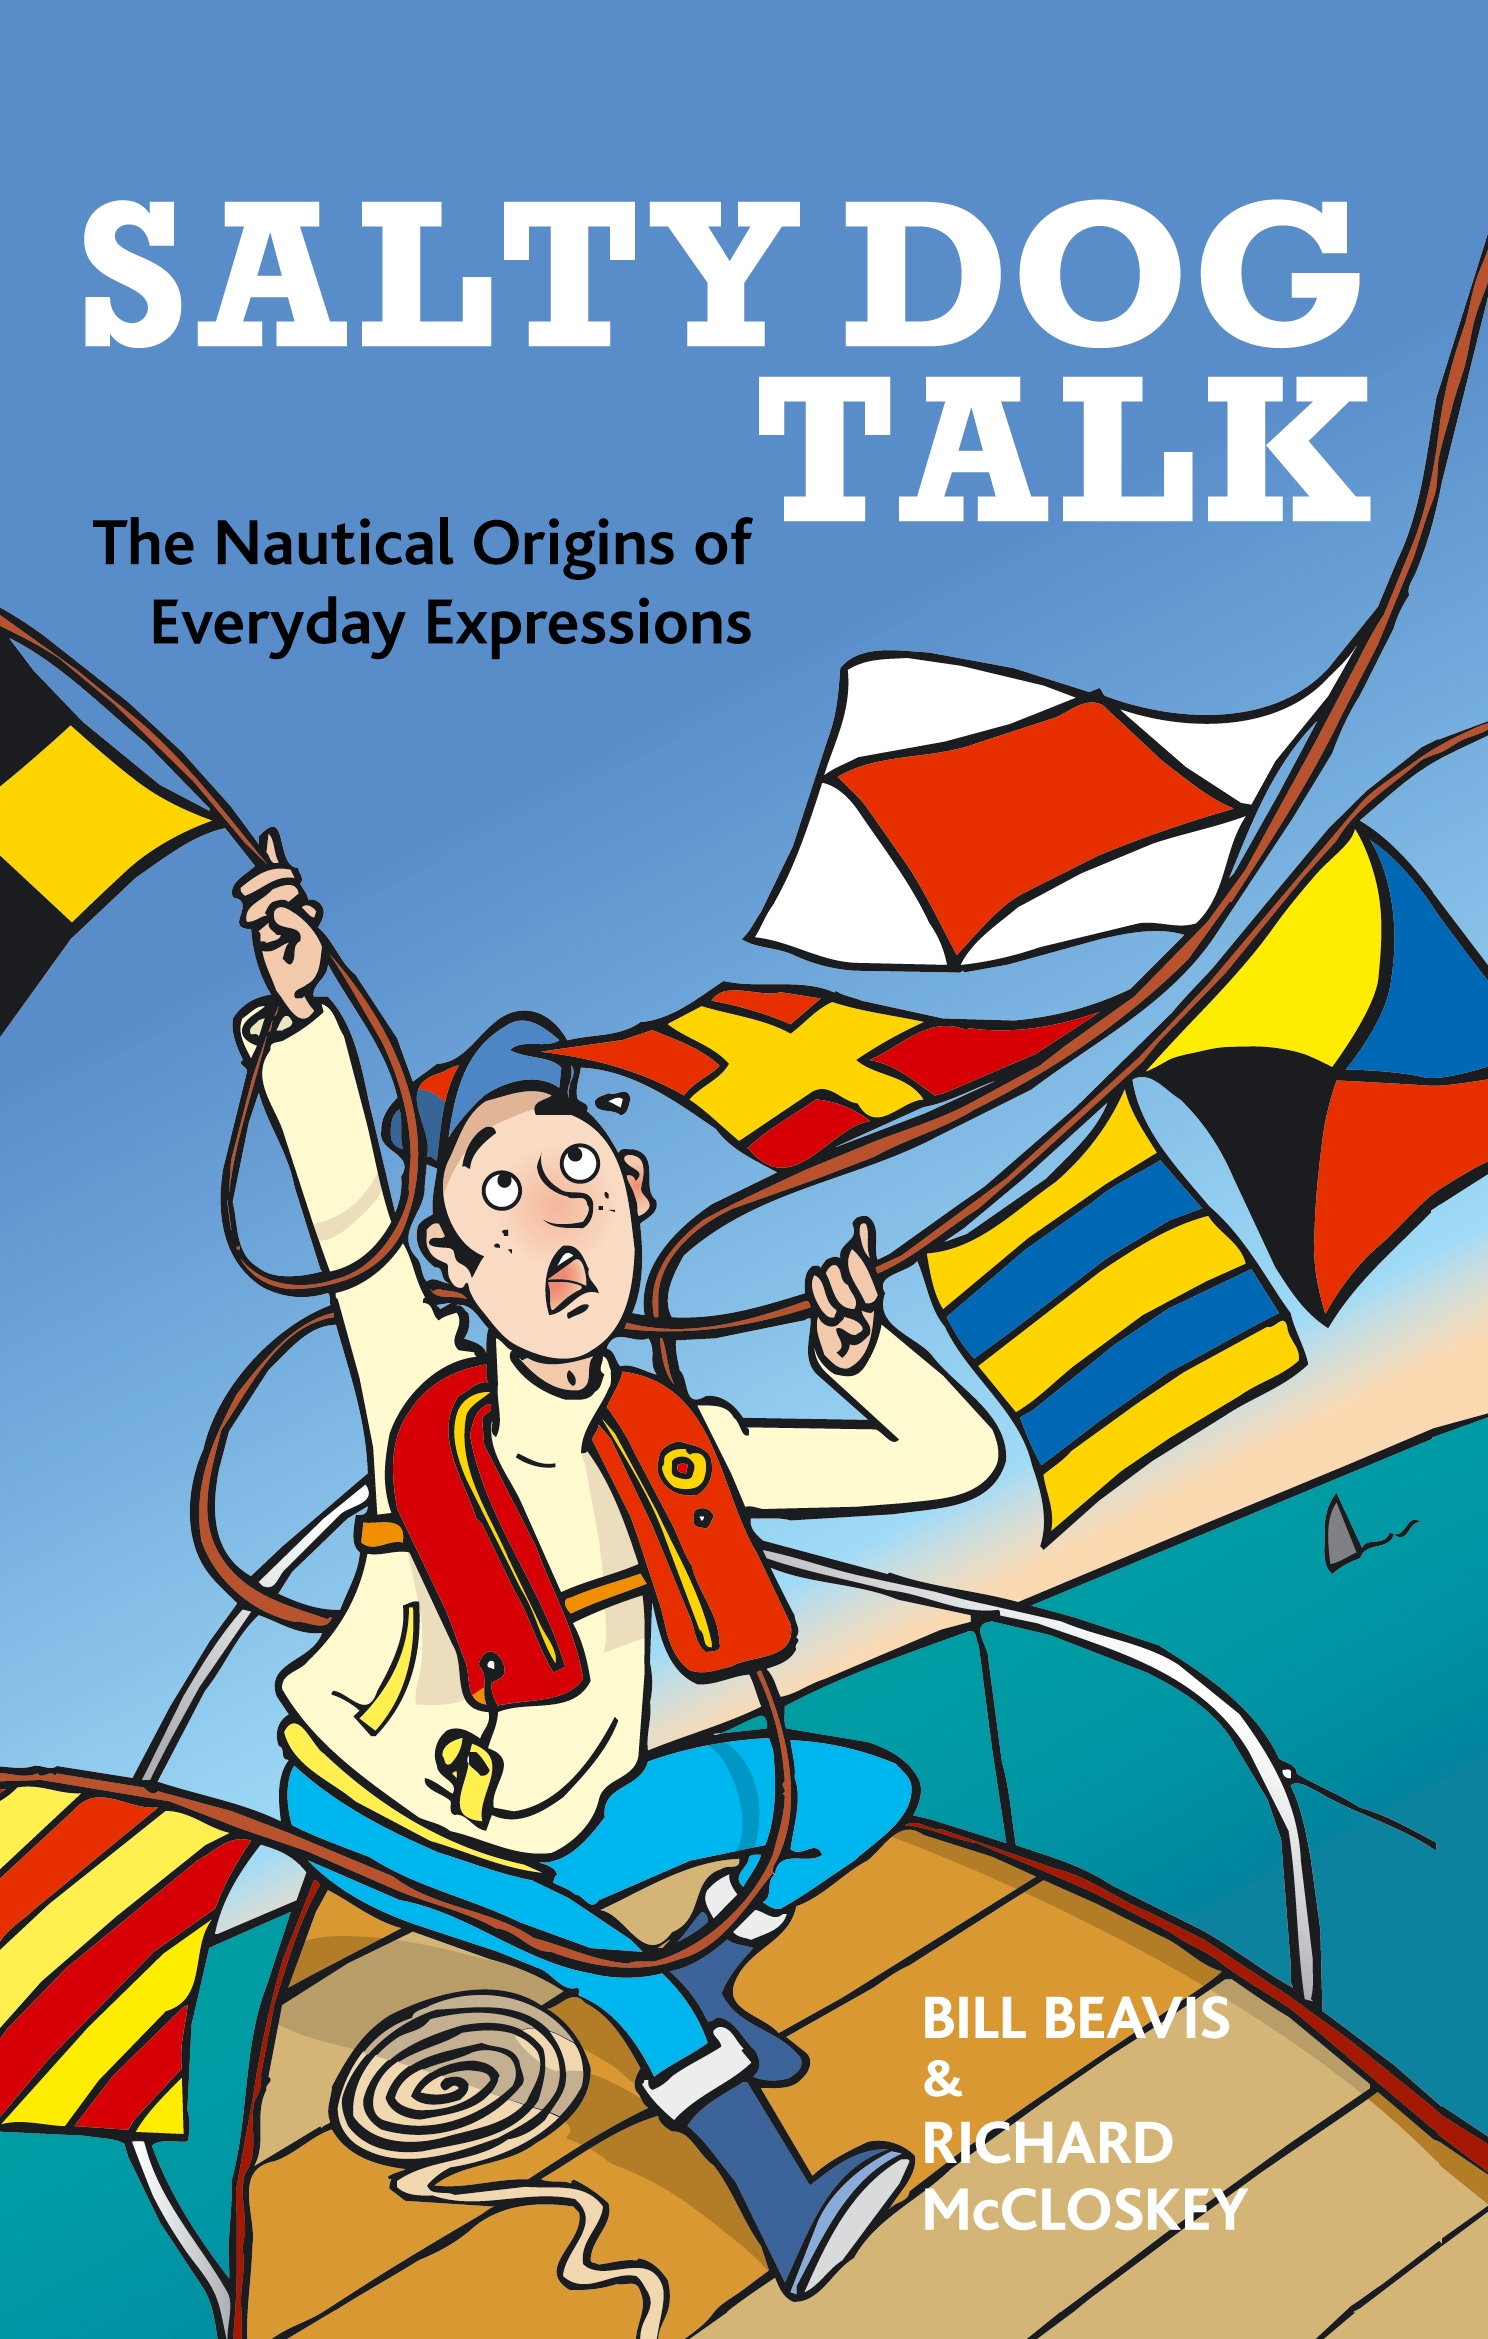 Salty Dog Talk The Nautical Origins of Everyday Expressions